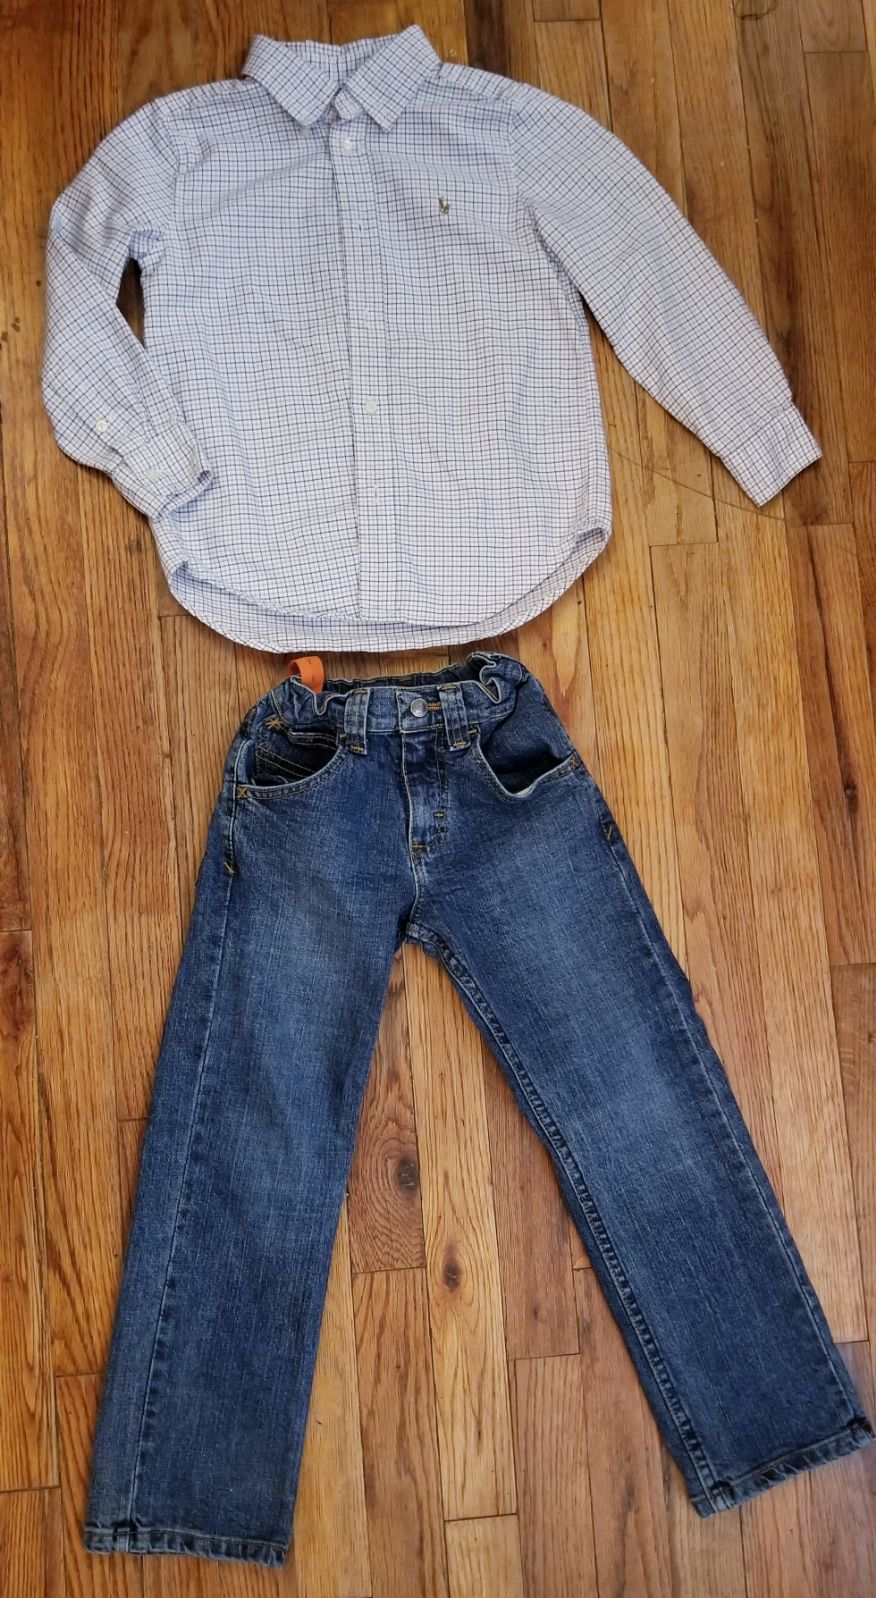 Boys Outfit Size 6 WRANGLER/ RALPH LAURE